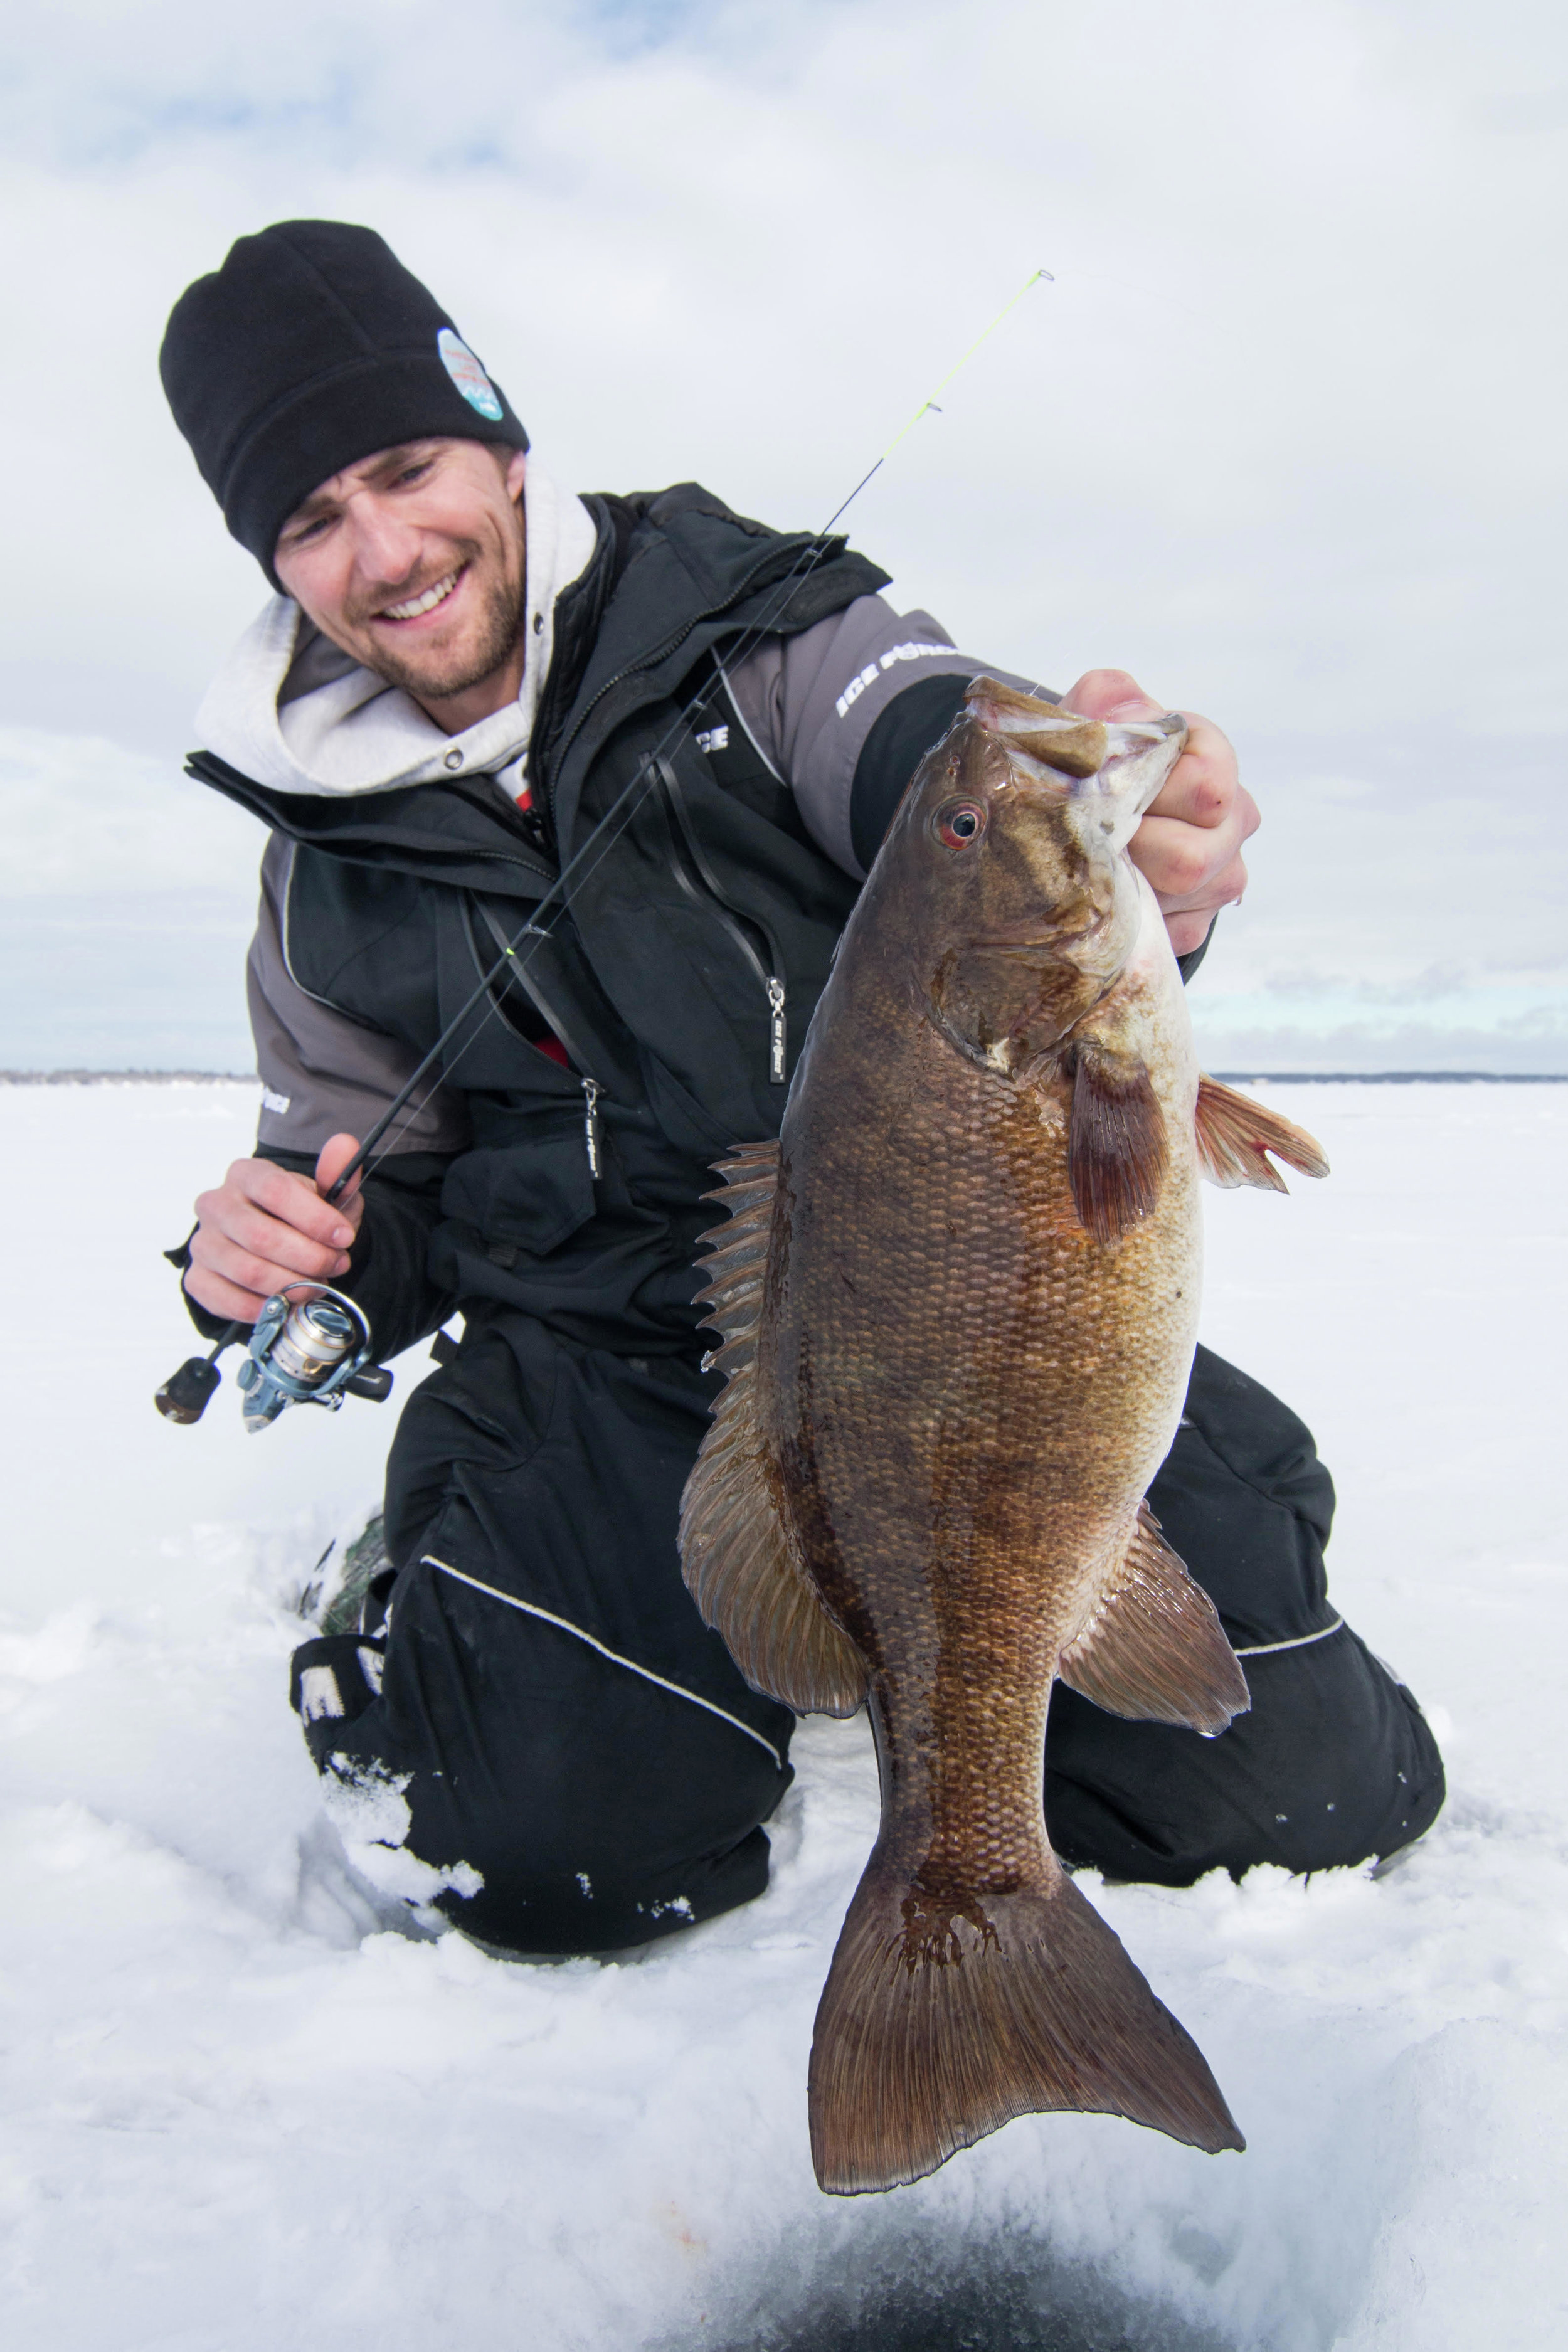 Andy Walls with a trophy smallmouth caught on a light panfish rig. Finesse presentations often account for the biggest fish caught during winter. Submitted photo / Christian Hoffman